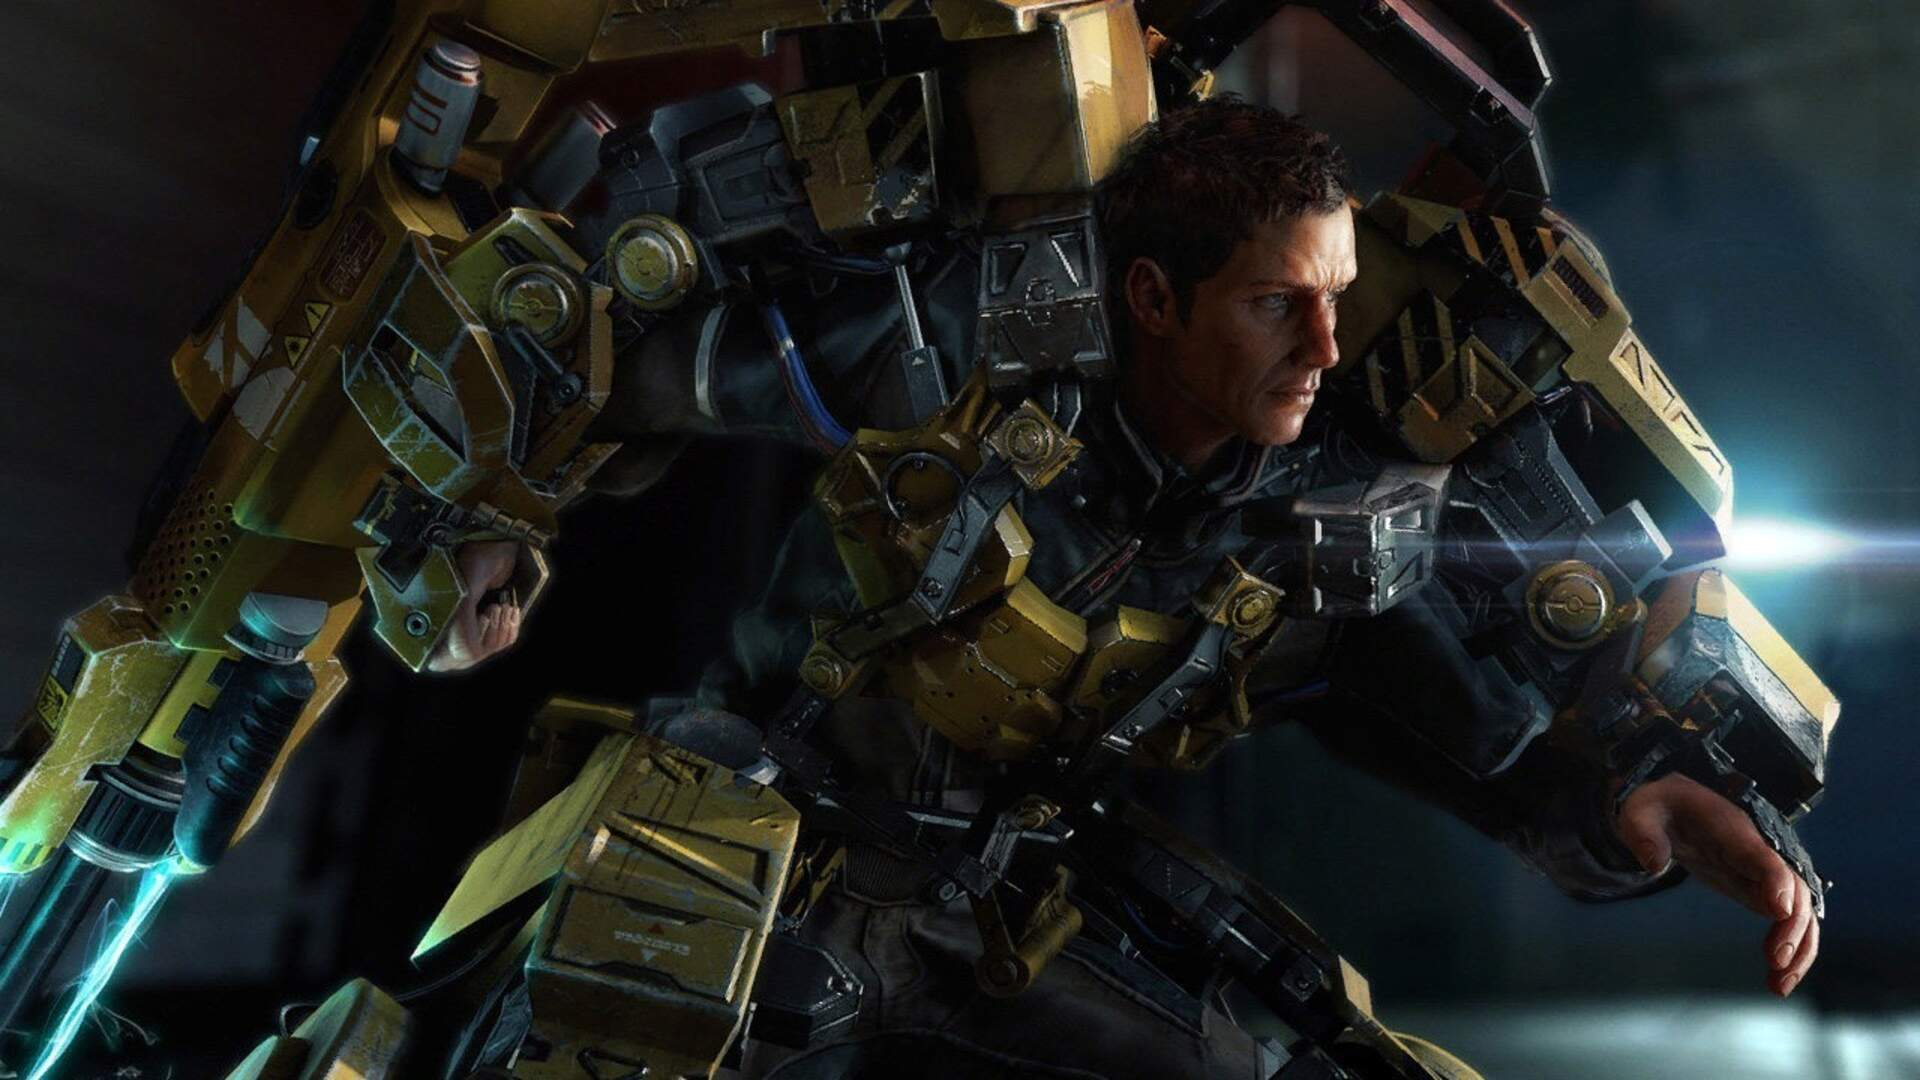 The Surge Tips - Level Walkthrough Guides, Combat Tips and Tricks